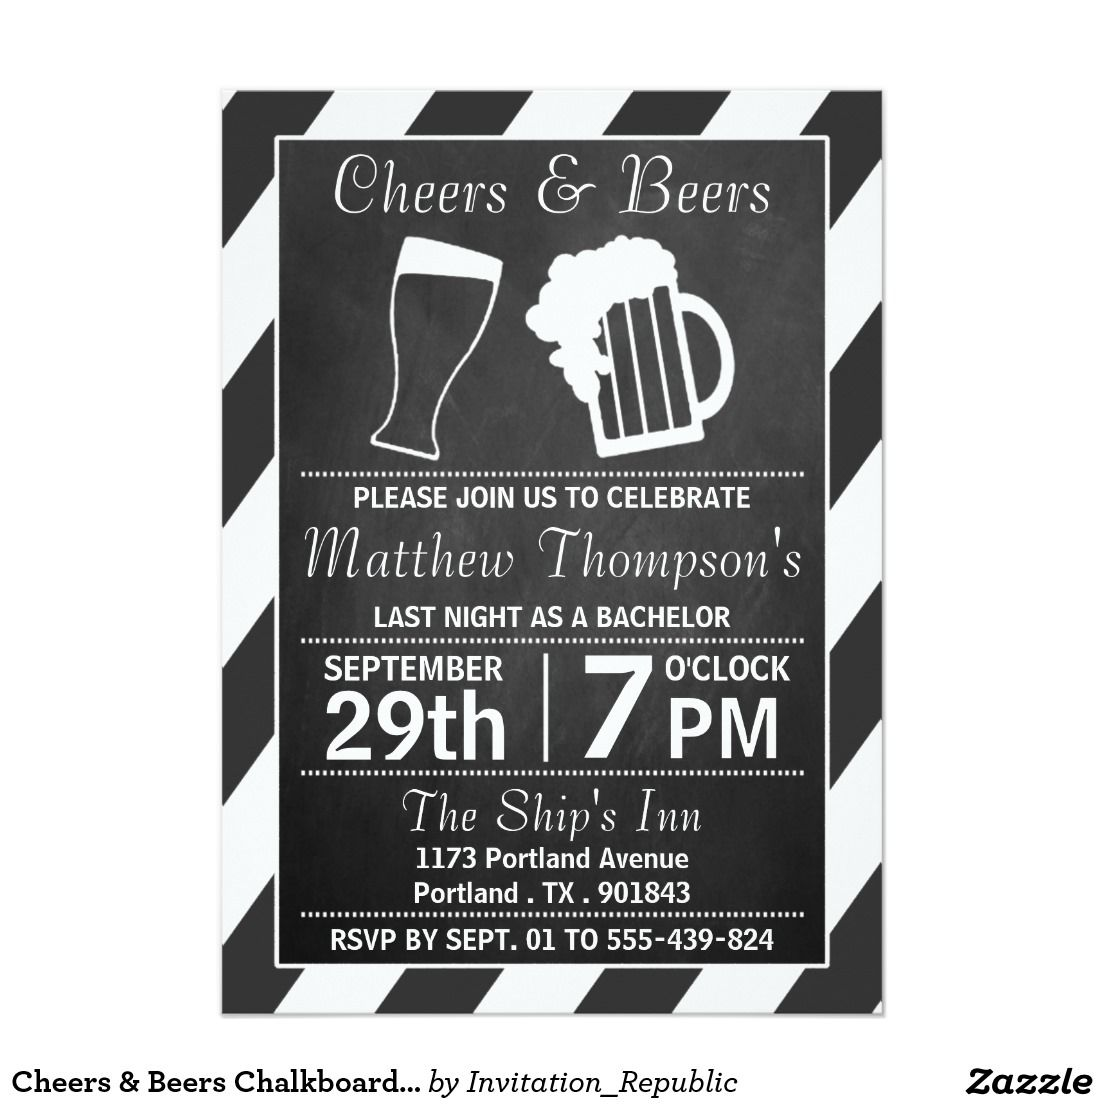 Cheers & Beers Chalkboard Bachelor Party Invitation  Zazzle.com